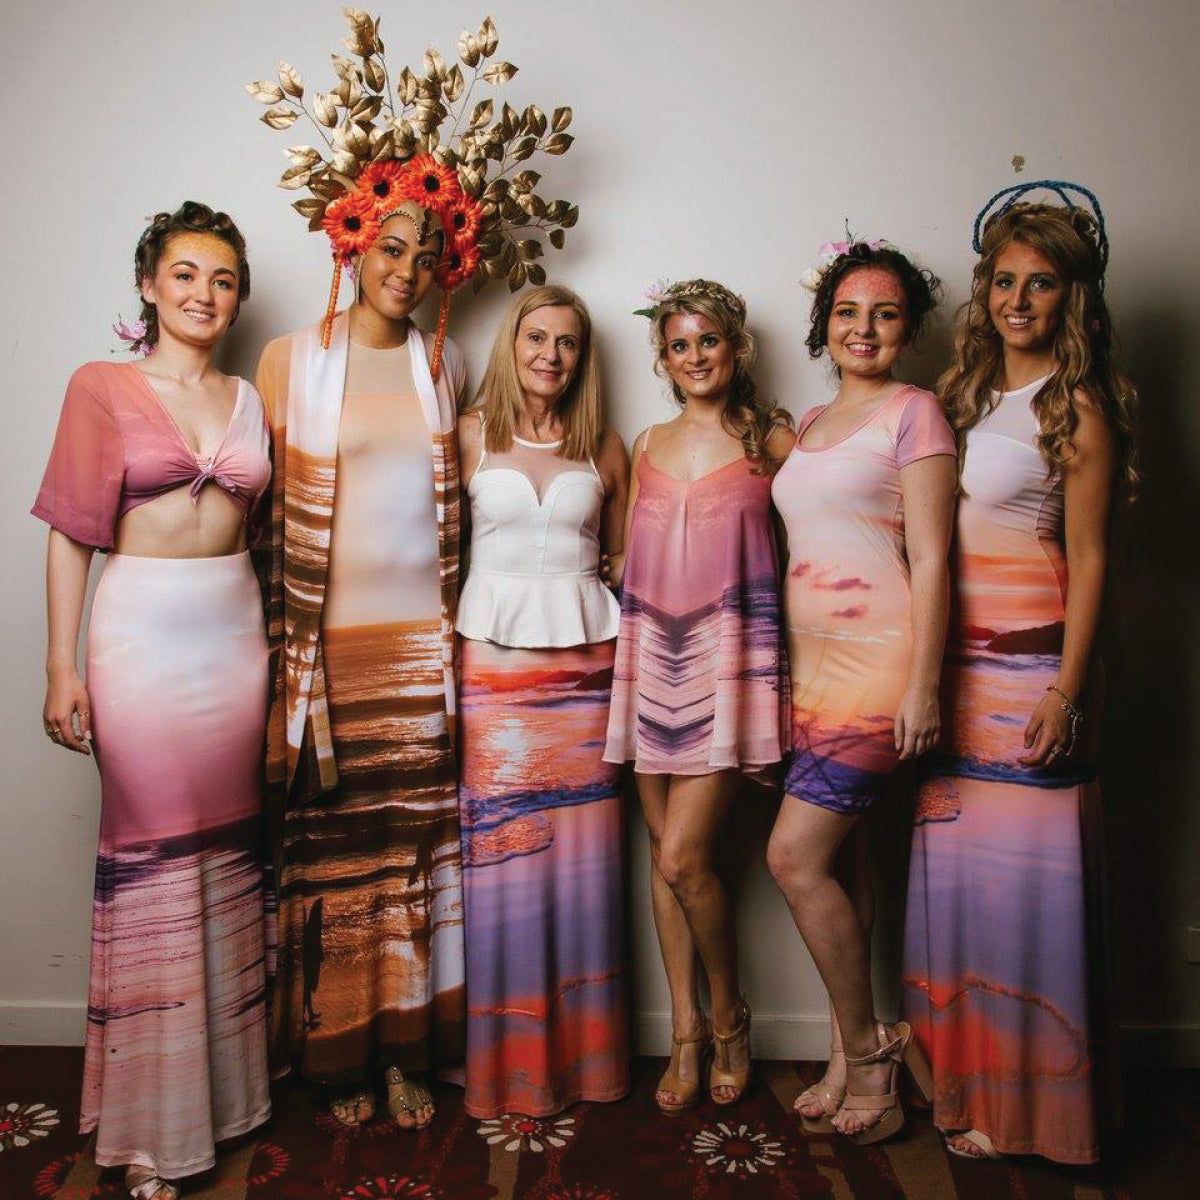 Shop The Dress Collective's range of Gold Coast emerging, sustainable and ethical fashion designer Why Mary for quirky handmade dresses, skirts, tops and Australian made womenswear